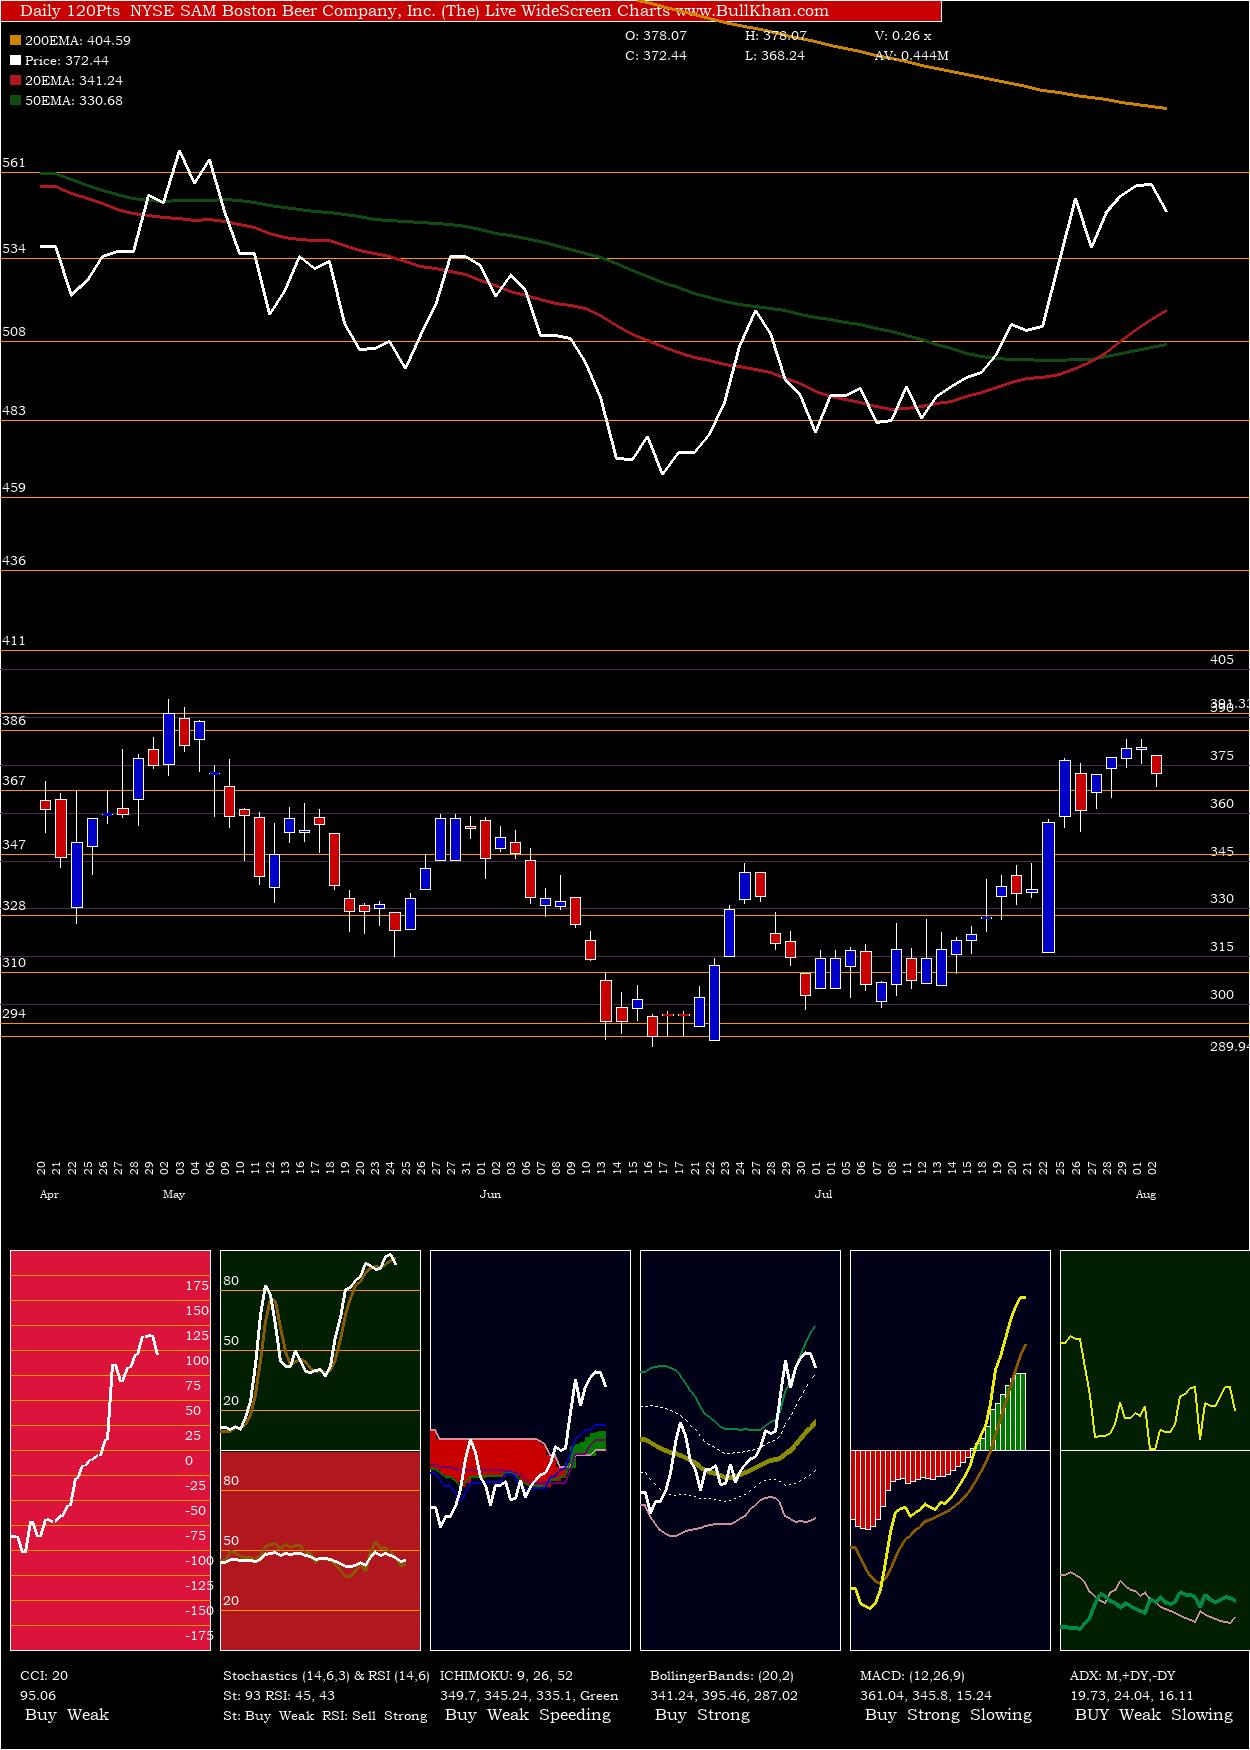 Boston Beer charts and indicators